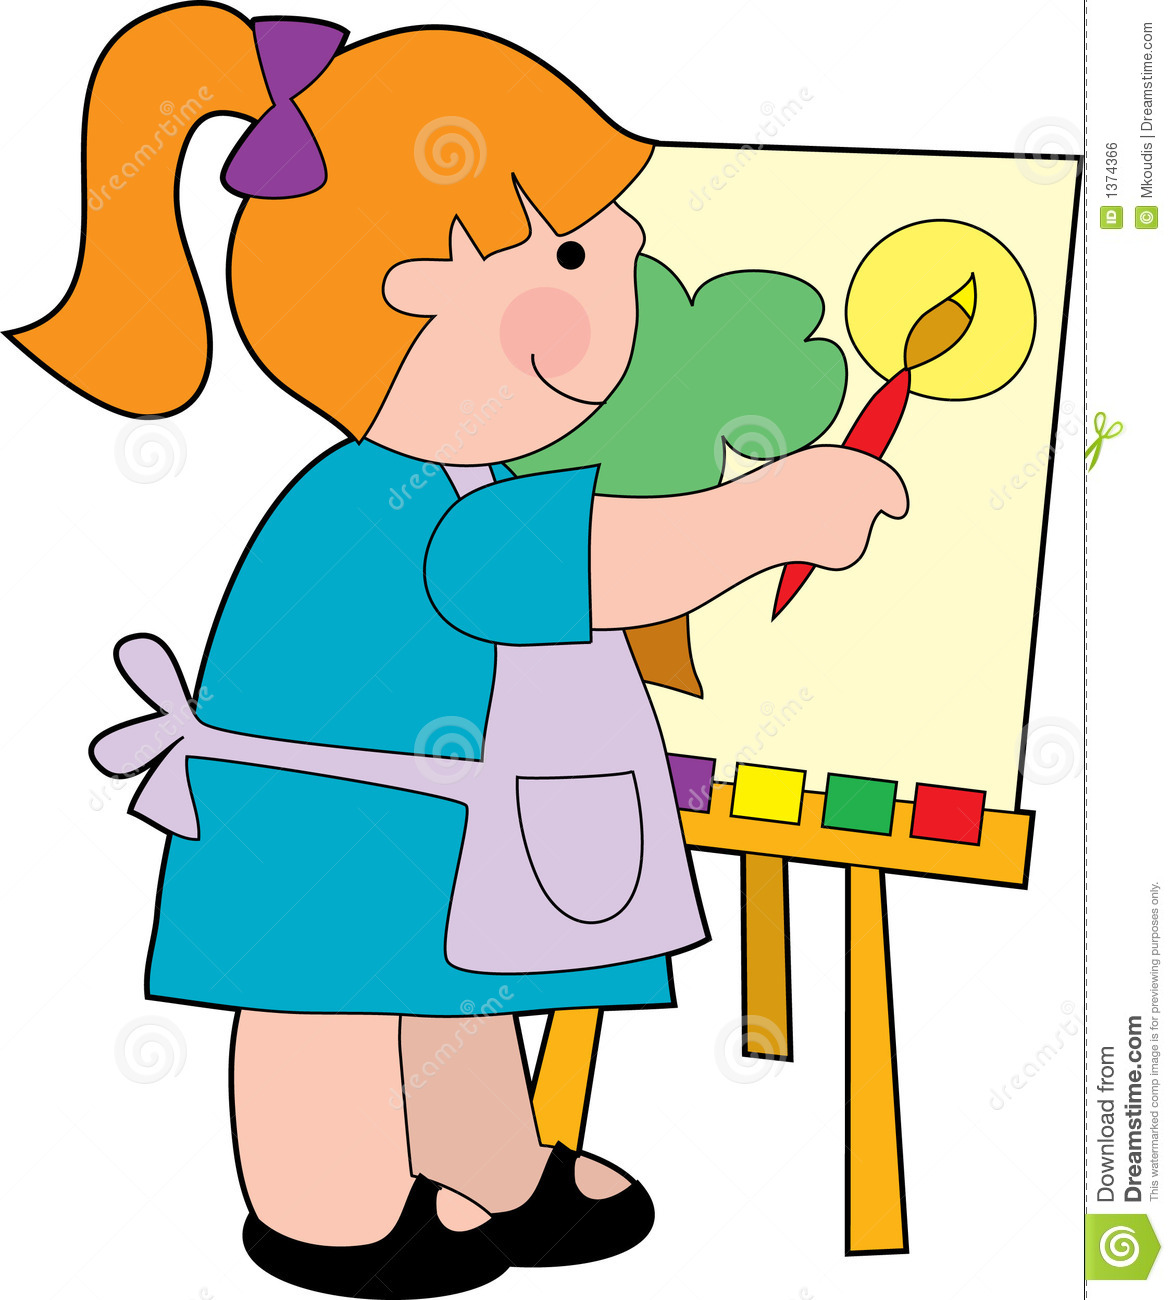 Stock photos clipart image royalty free download Kids Painting Clipart | Free download best Kids Painting ... image royalty free download